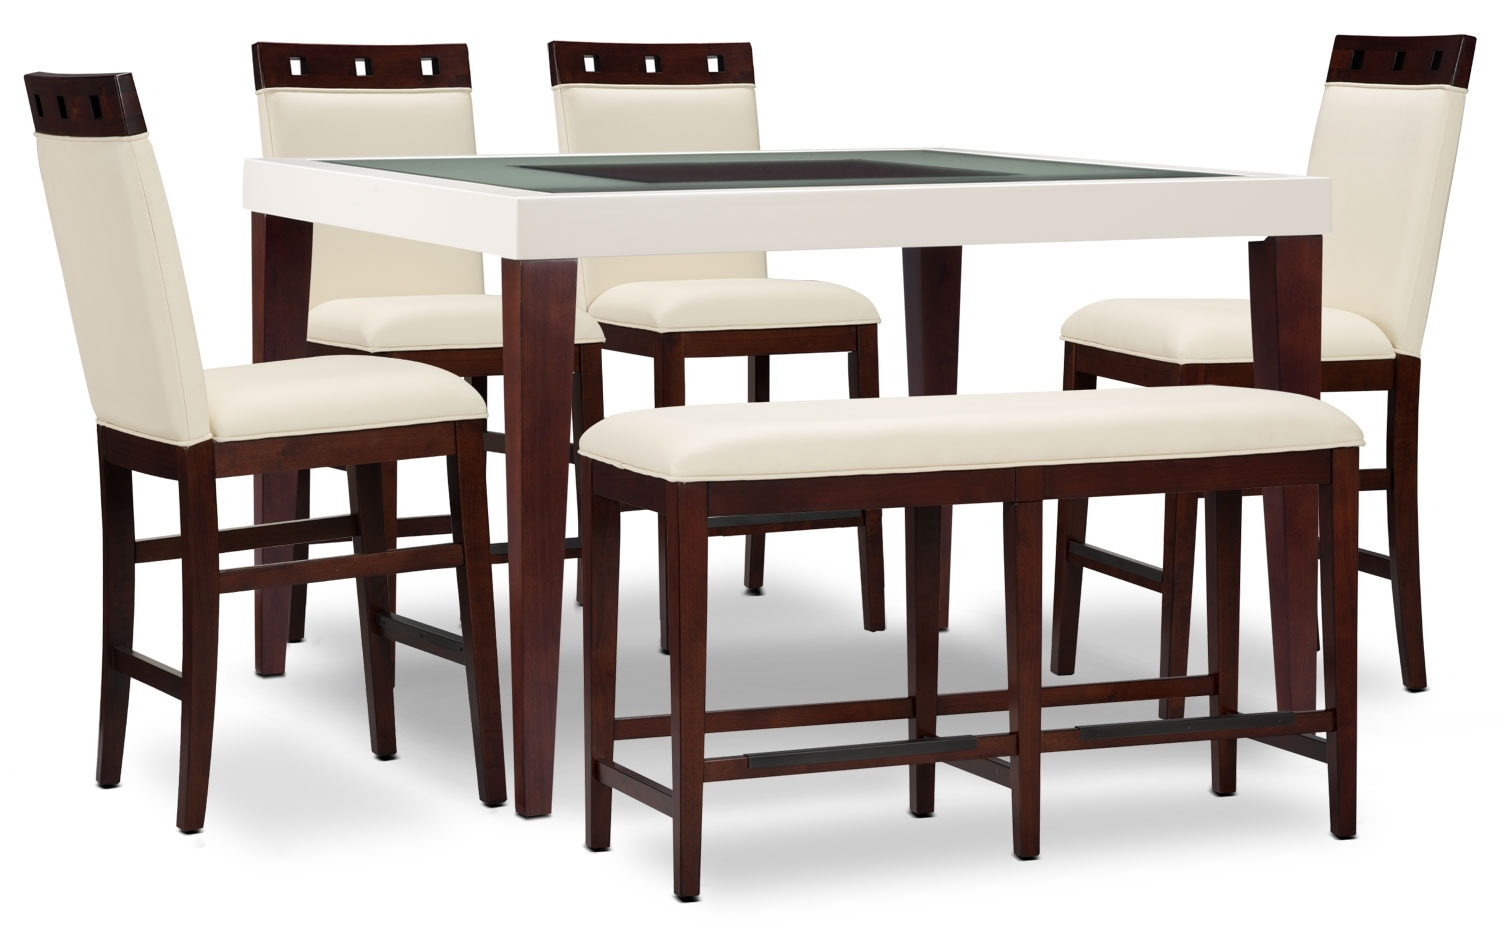 Dining Room Furniture - Zeno 6-Piece Counter-Height Dining Package with Wood Top Chair